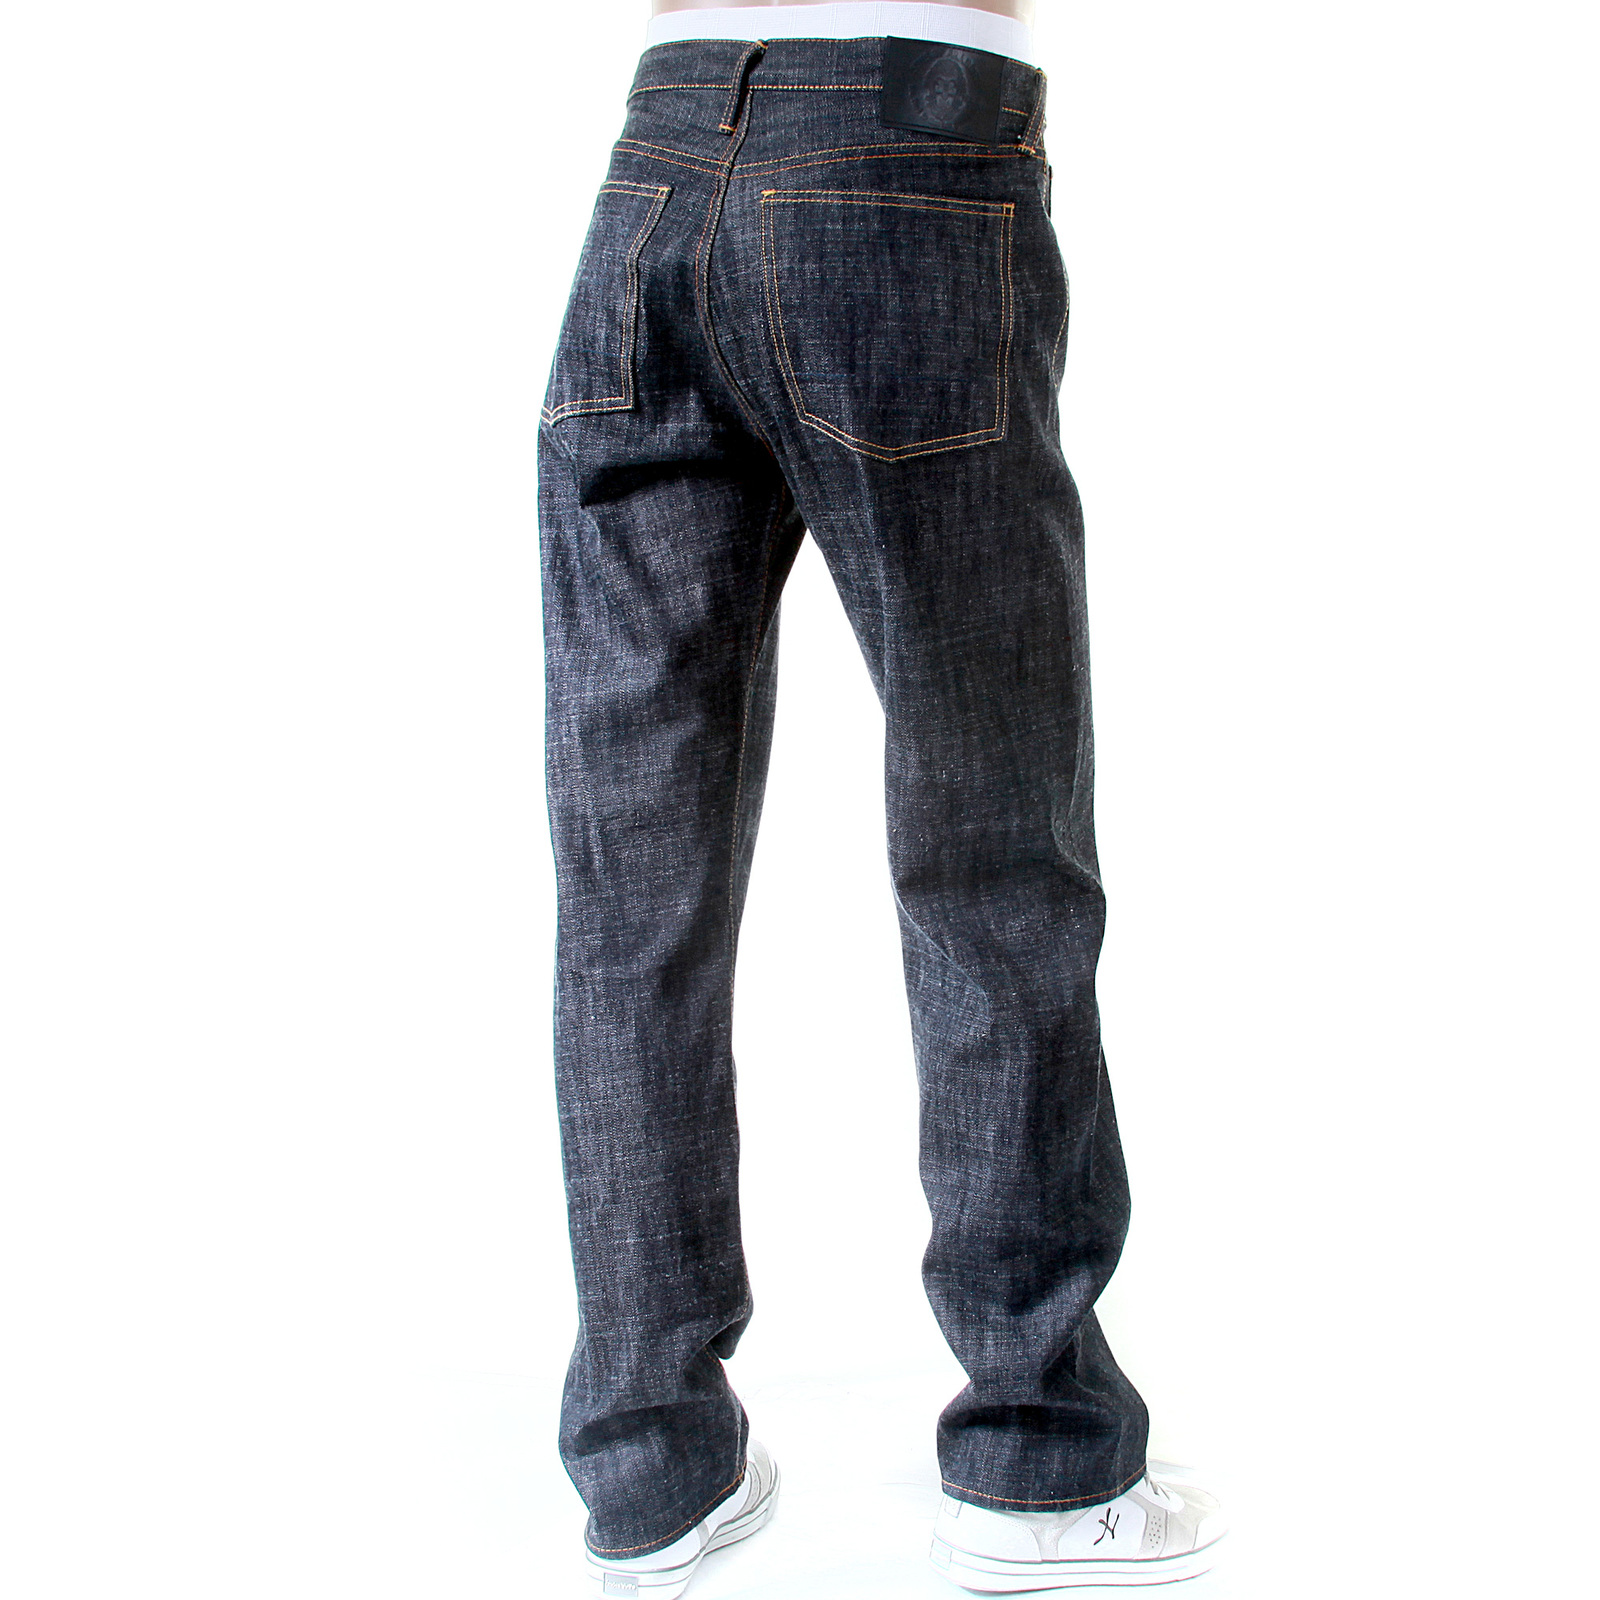 Sons Of Anarchy Raw Selvedge Denim Jeans Soa1959 At Togged